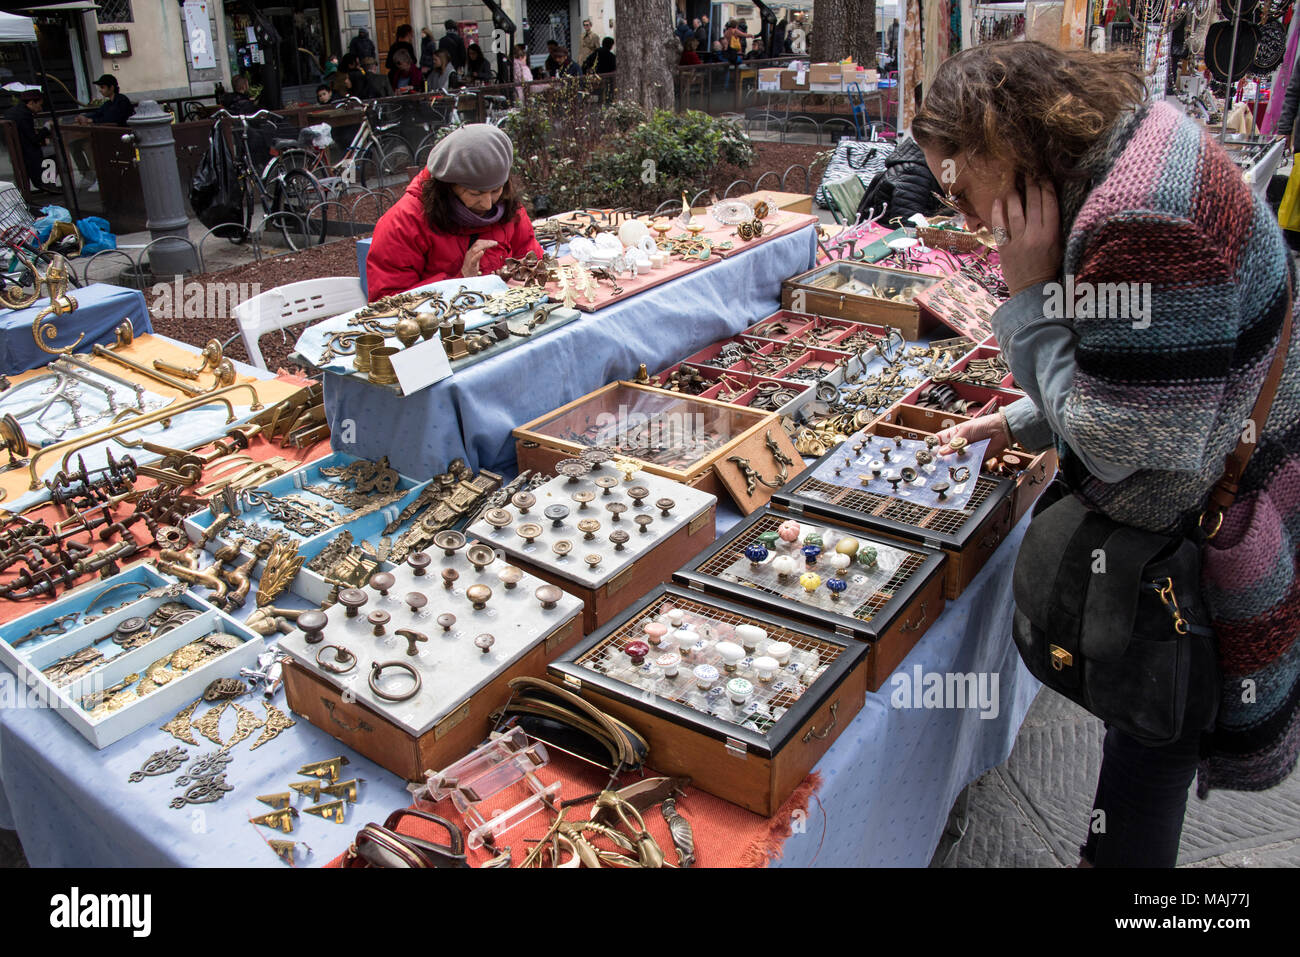 Market in Piazza Santo Spirito, Florence, Italy. - Stock Image